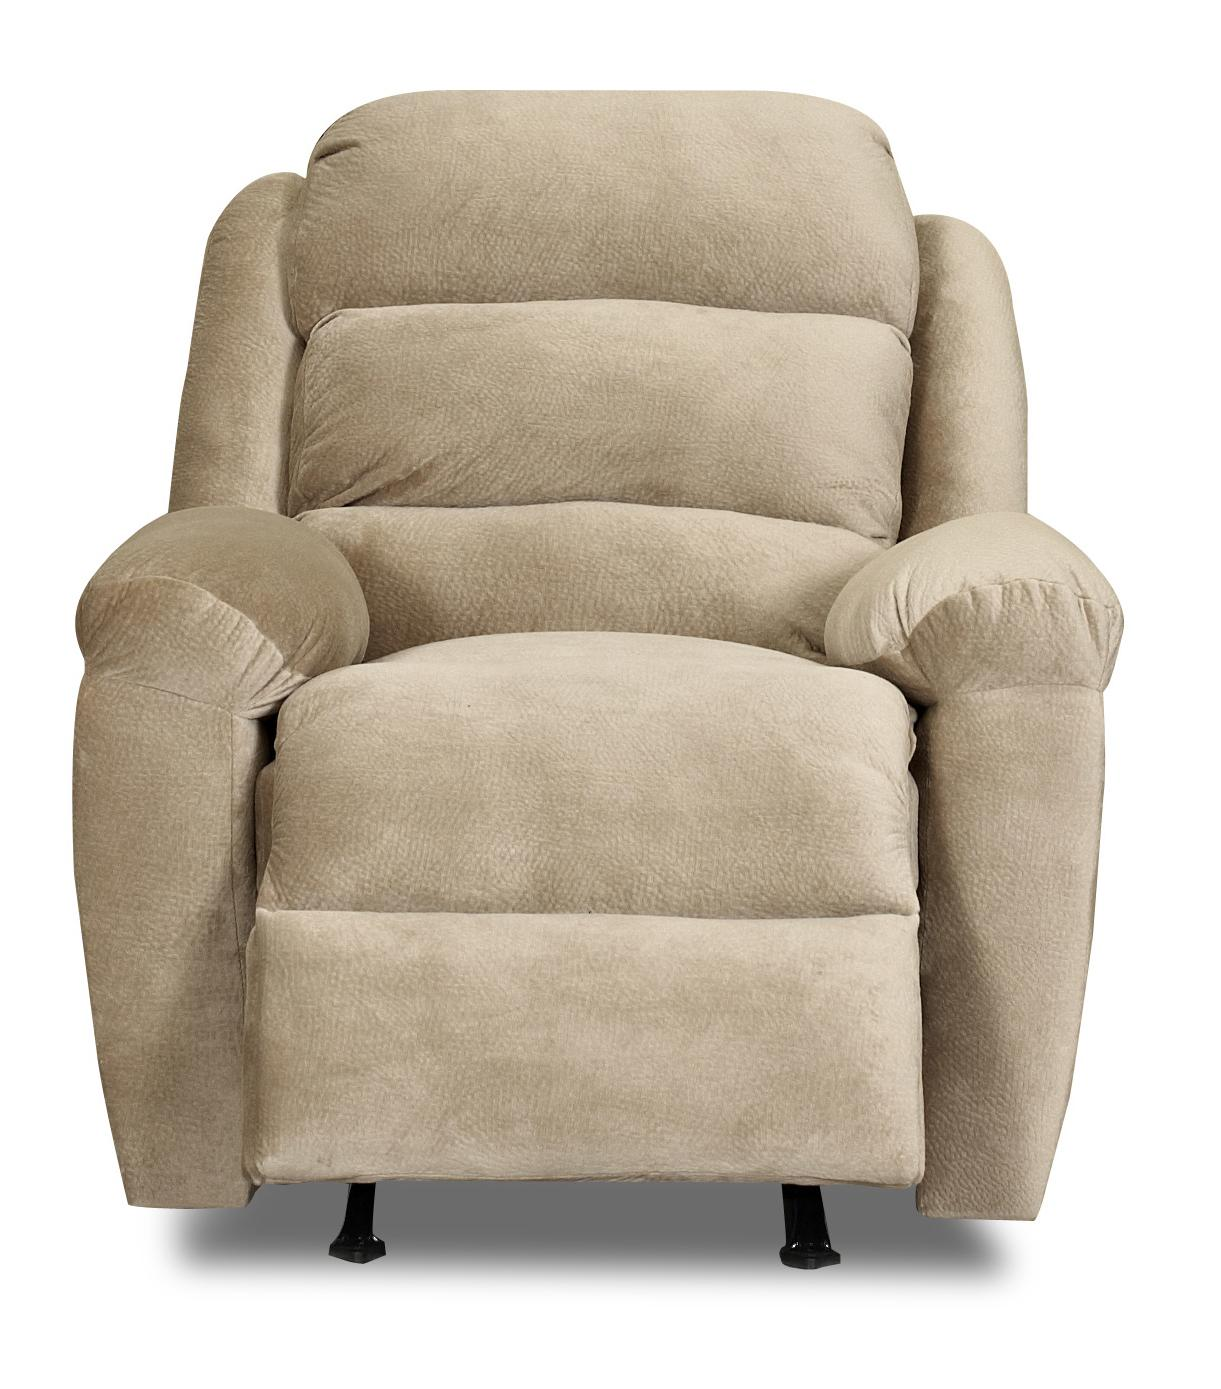 fresh image of reclining rocking chair